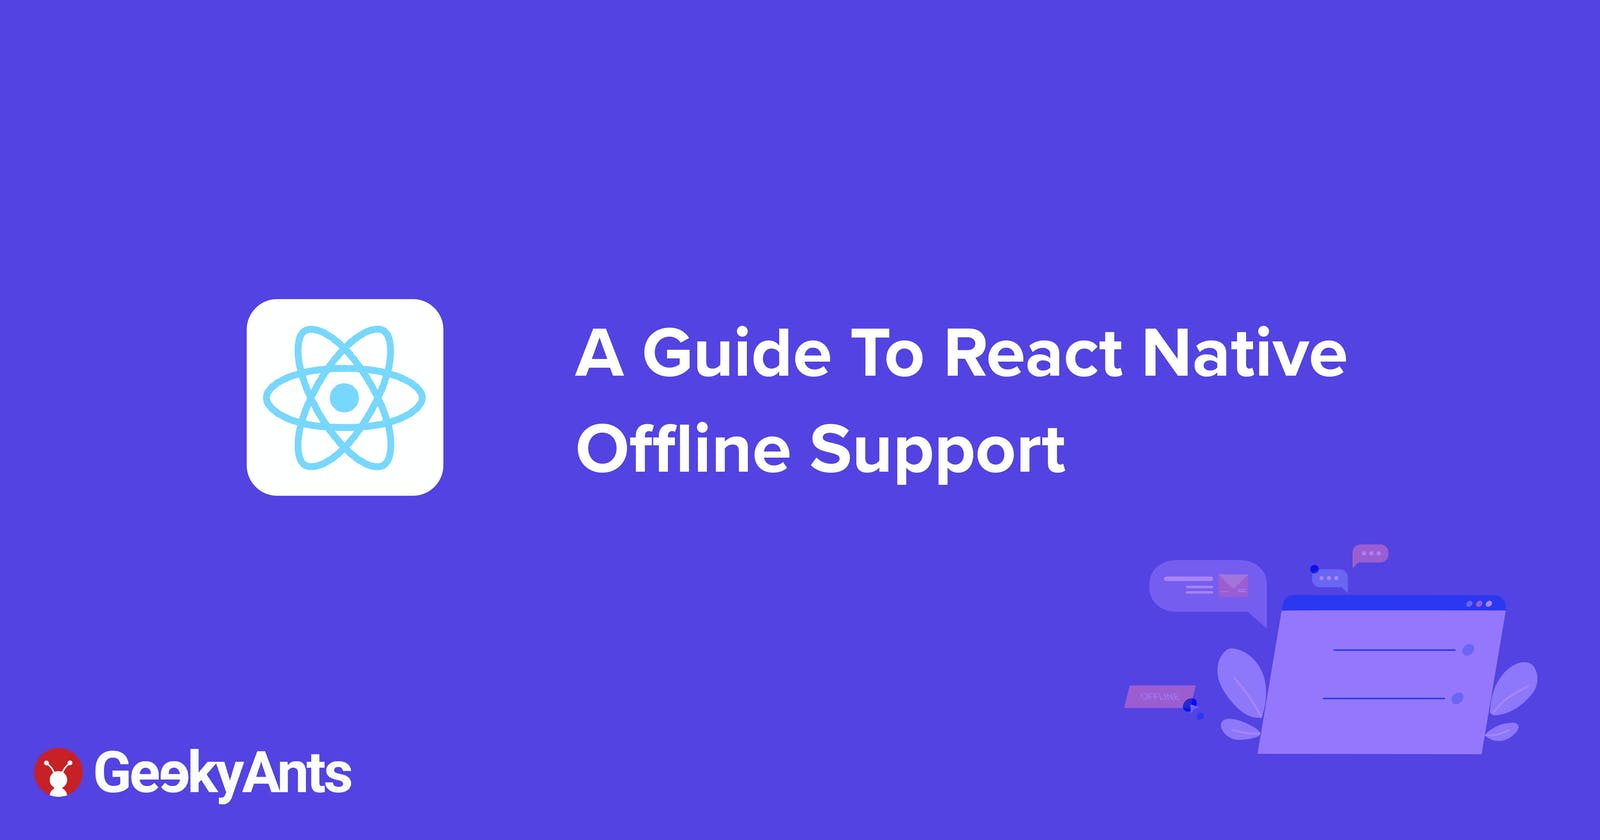 A Guide To React Native Offline Support